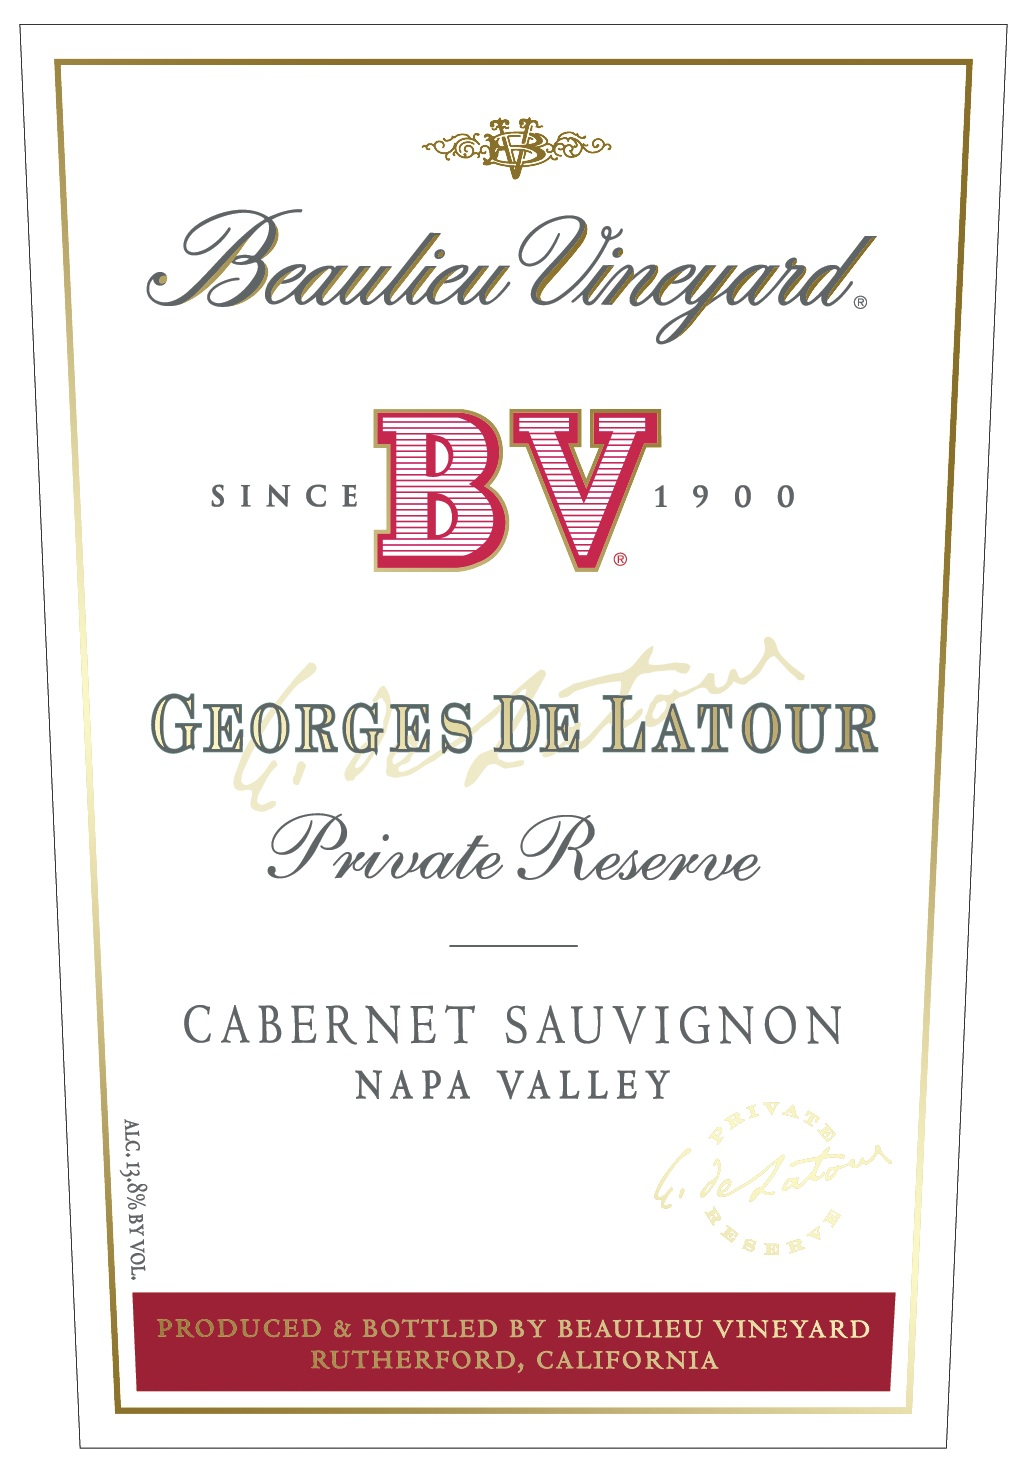 2014 Beaulieu Vineyards (BV) Cabernet Sauvignon Georges de Latour Private Reserve